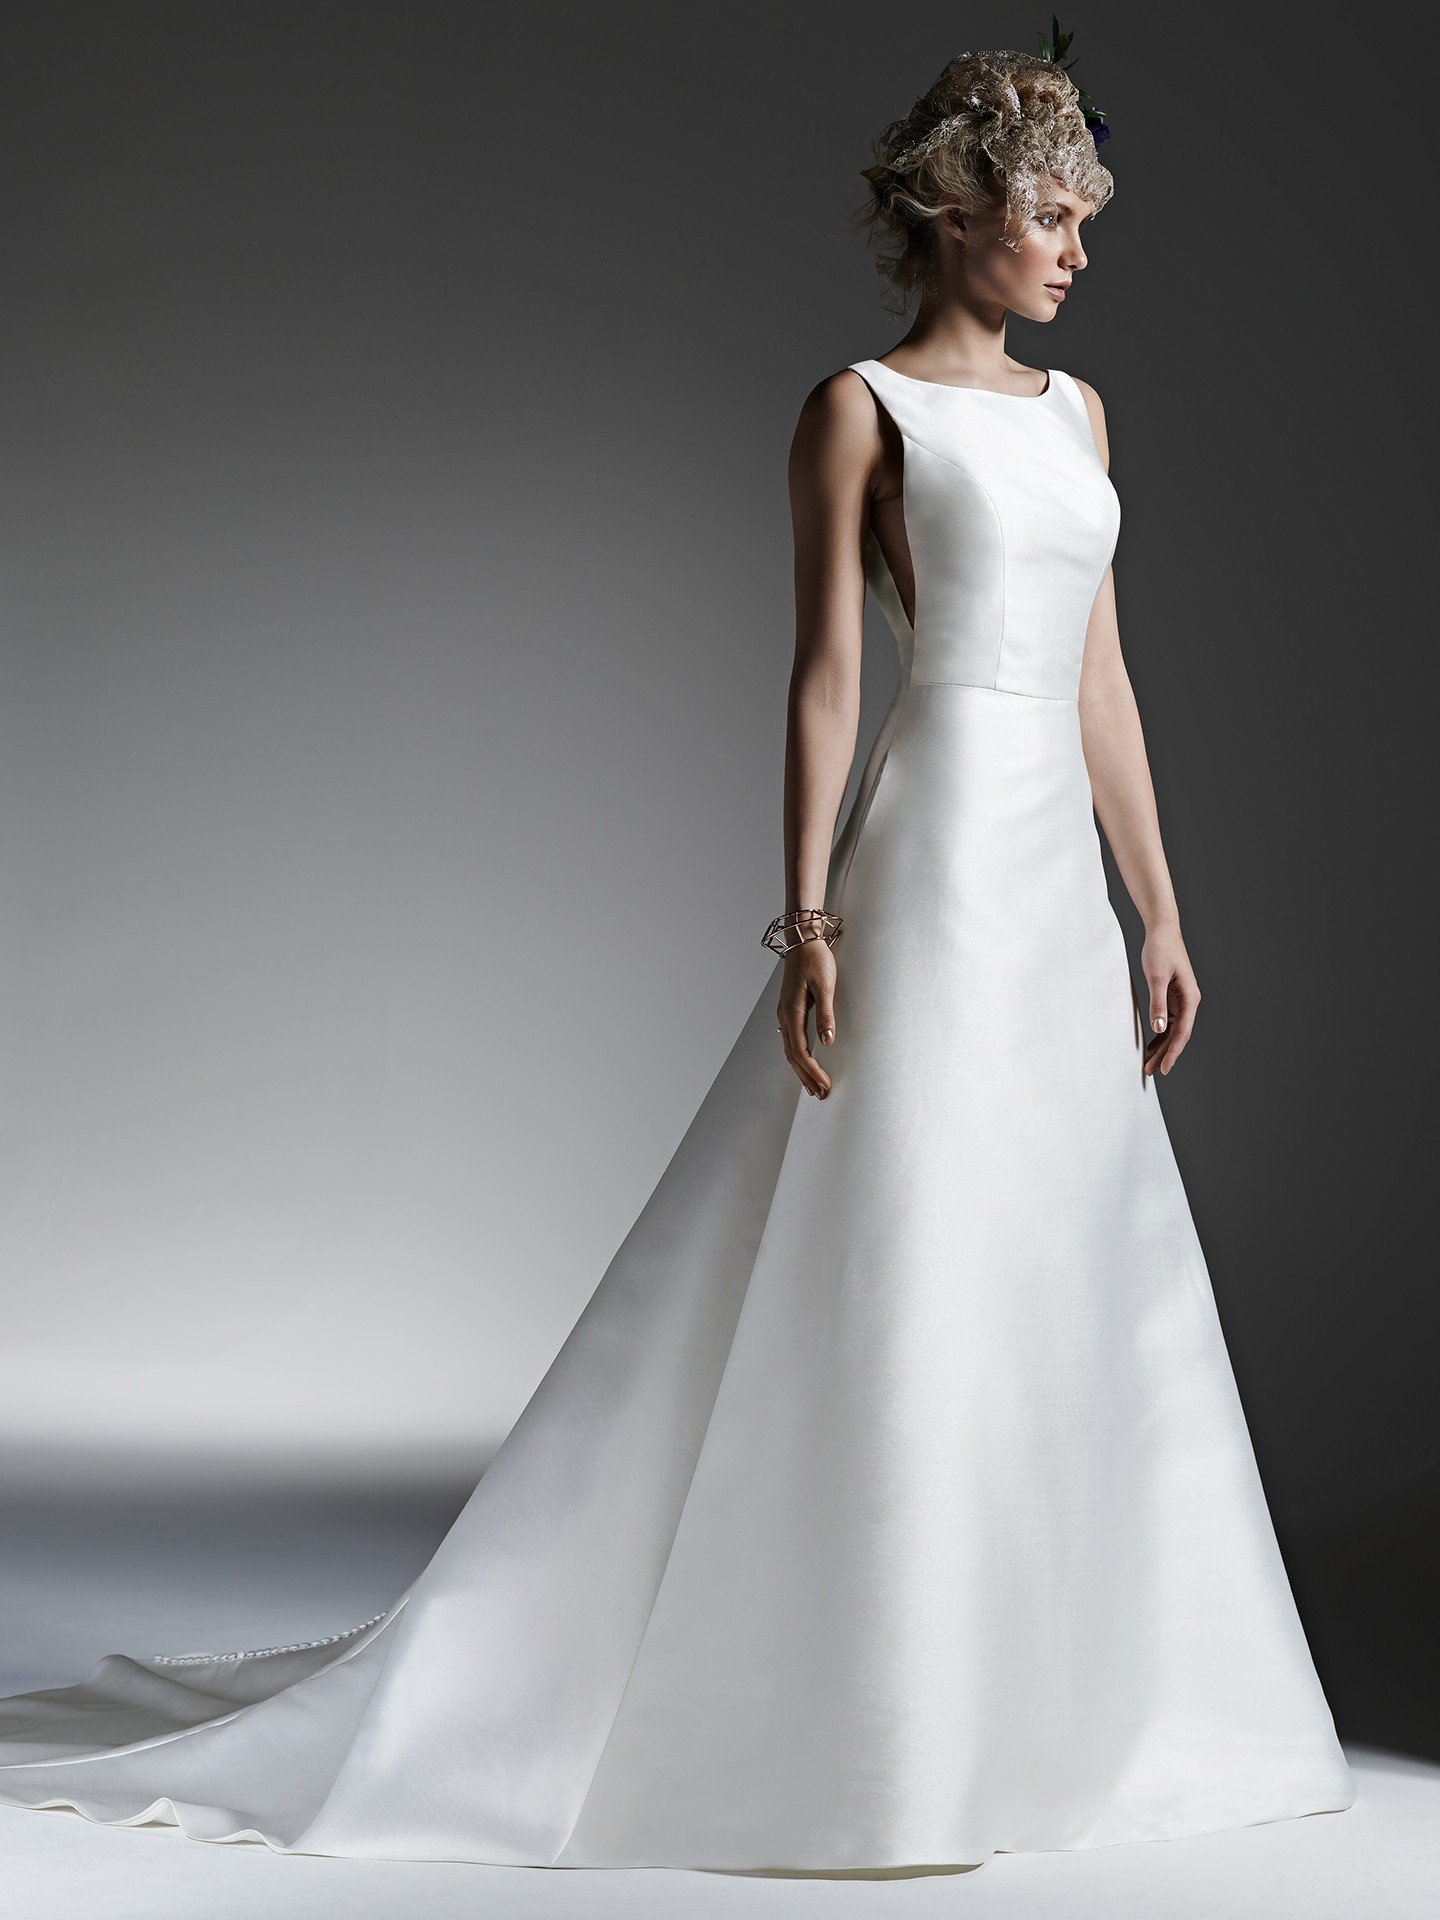 Minimalist A-line wedding dress